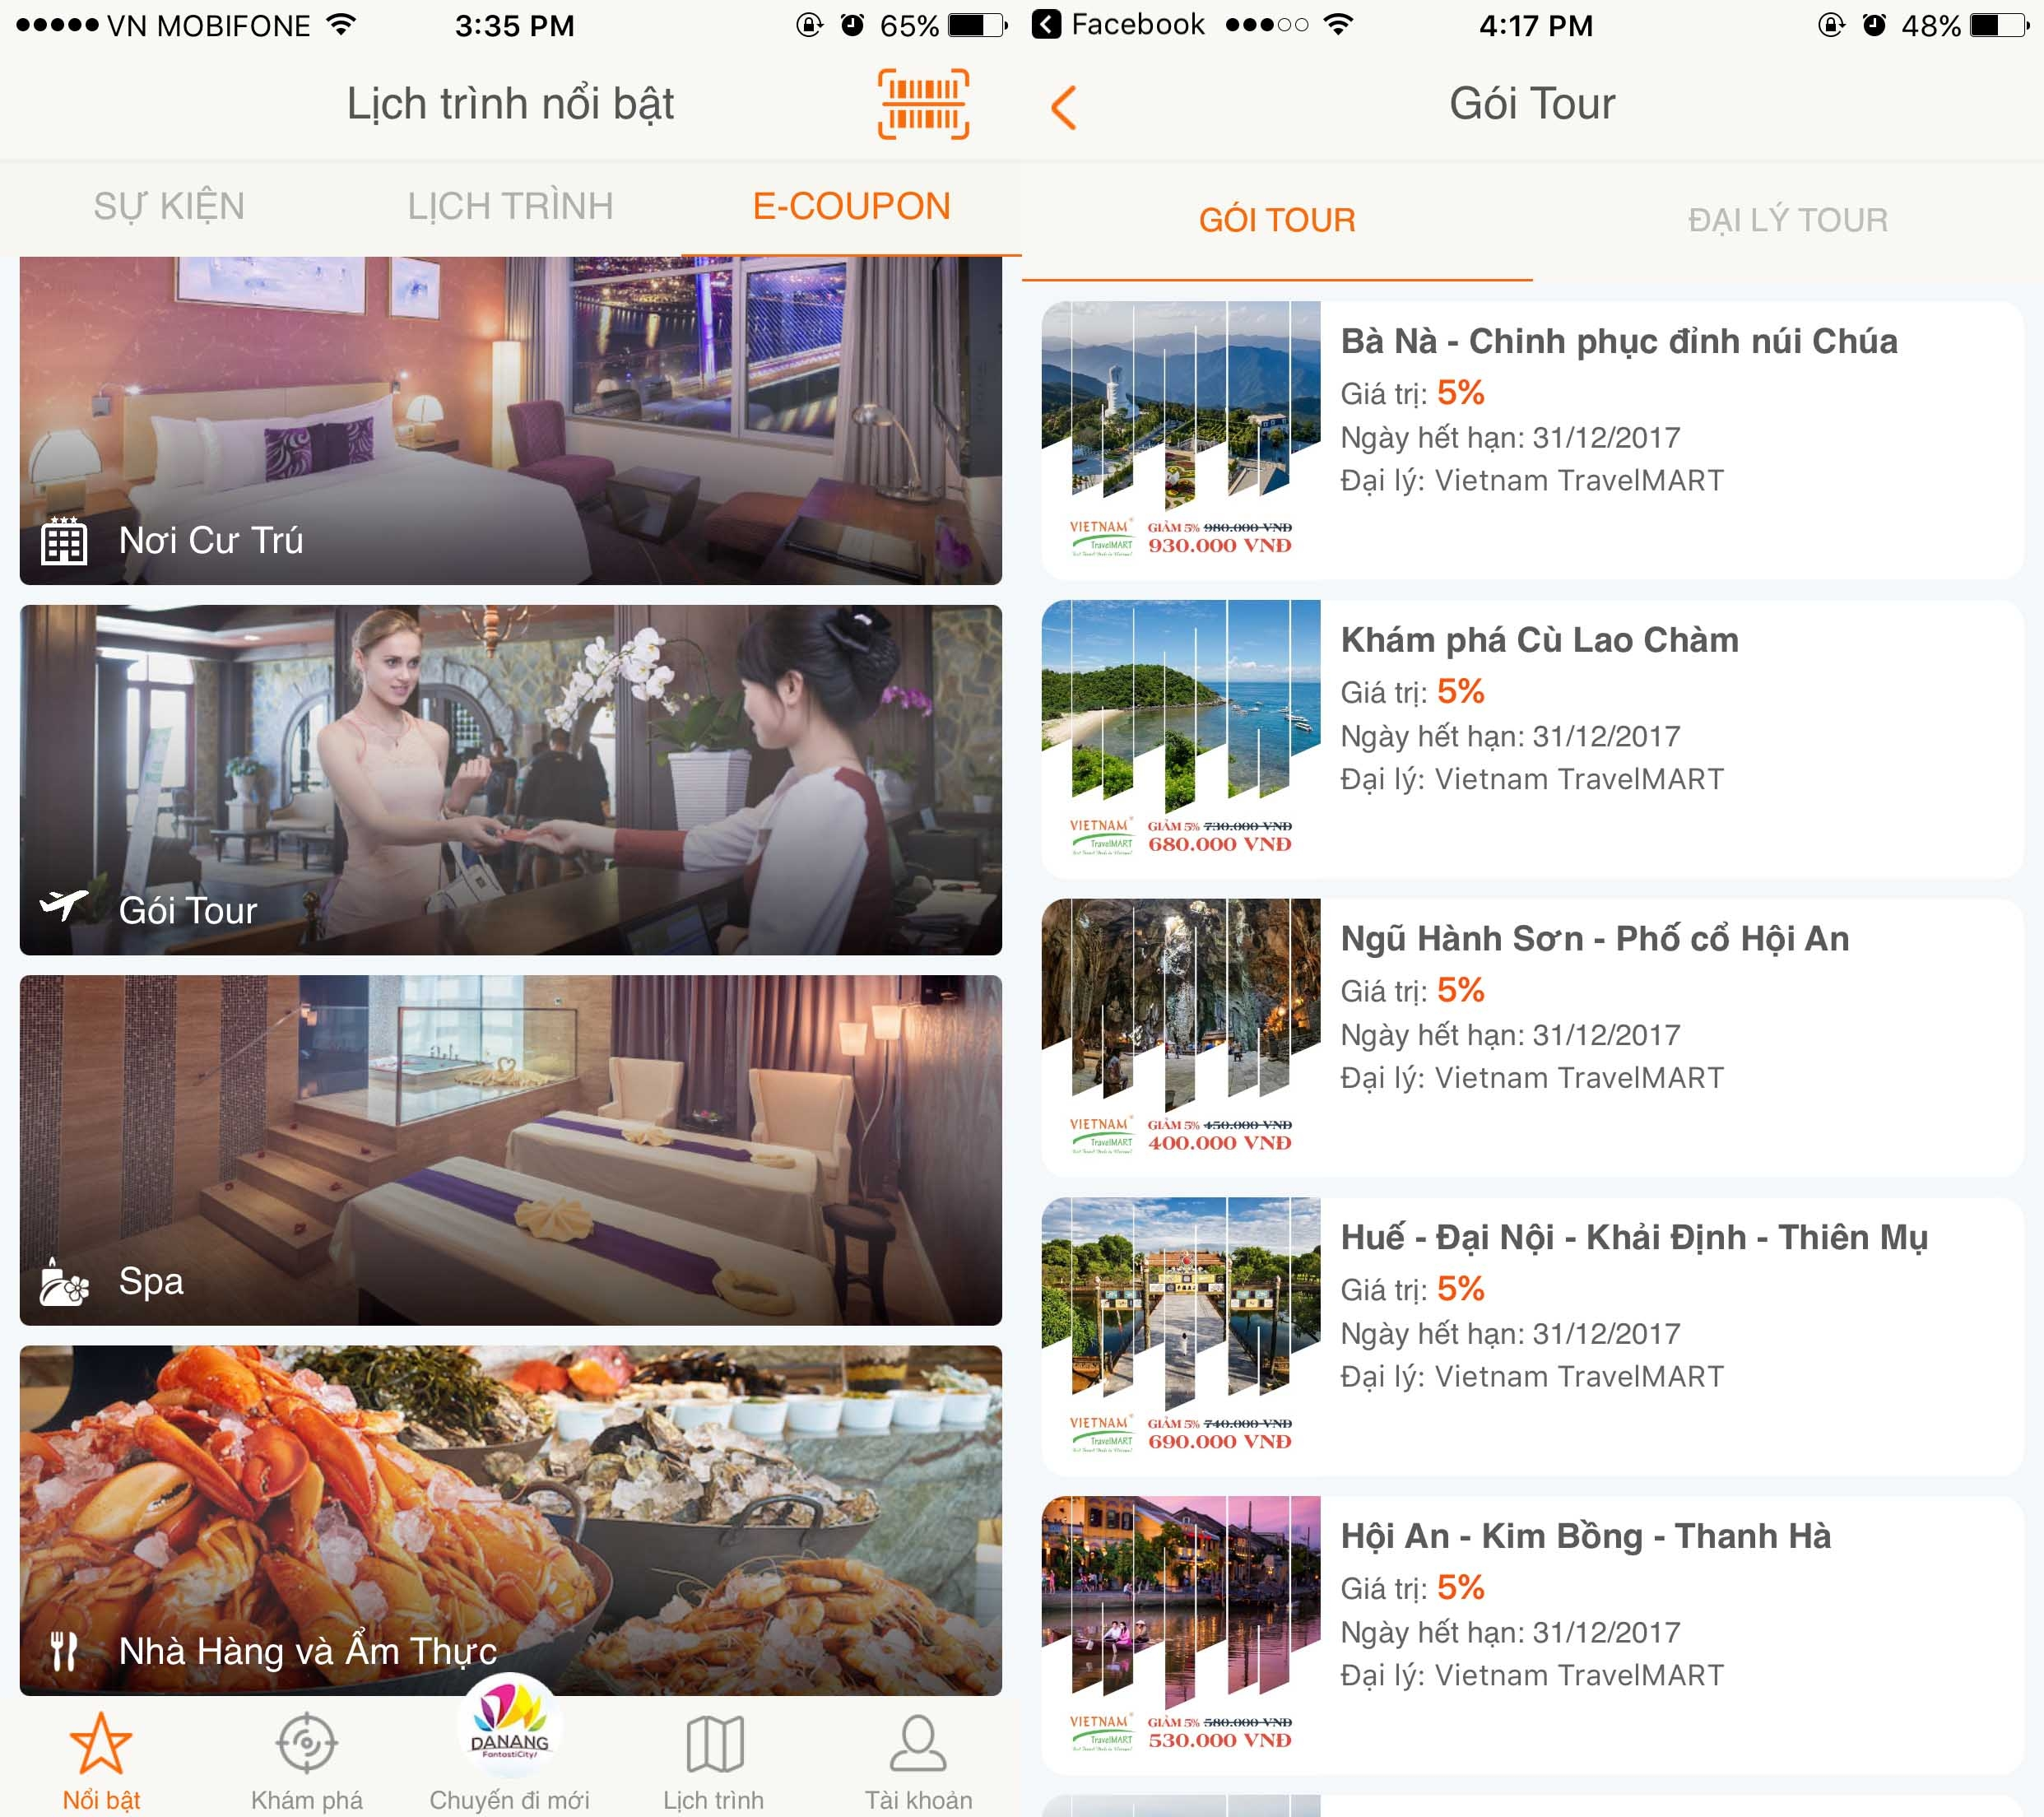 "New version of Danang tourist app released – Danang FantastiCity Ver 2.0 ""Check out Da Nang on your mobile devices!""1"